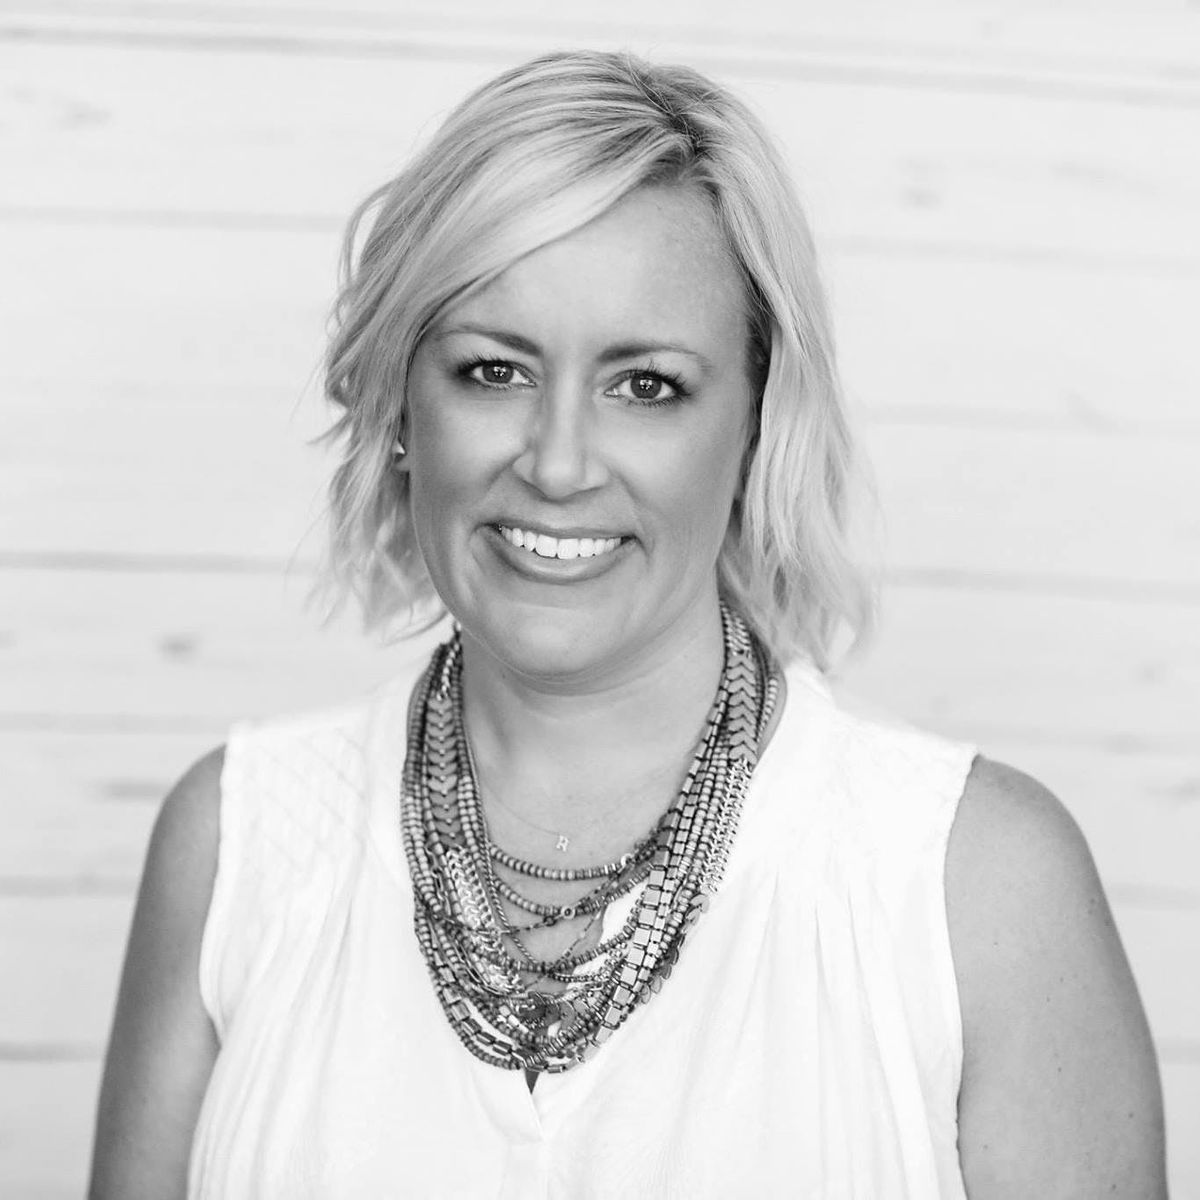 Learn More About Being a Stella & Dot Stylist